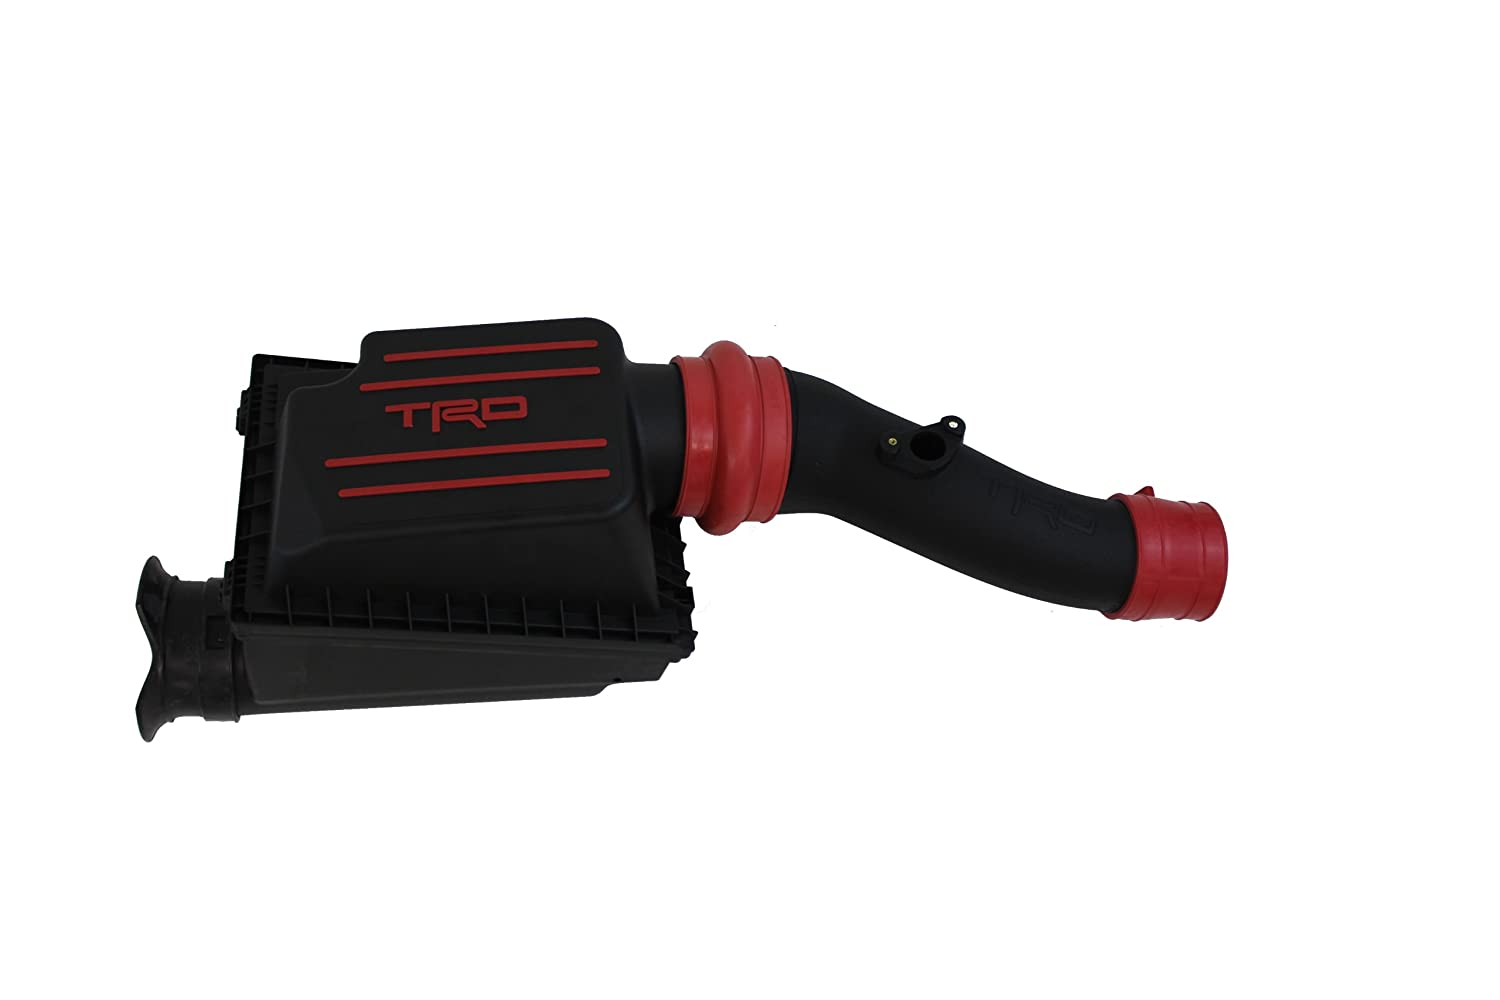 Genuine Toyota Parts PTR03-89100 TRD Cold Air Intake System for Select 4Runner and FJ Cruiser Models